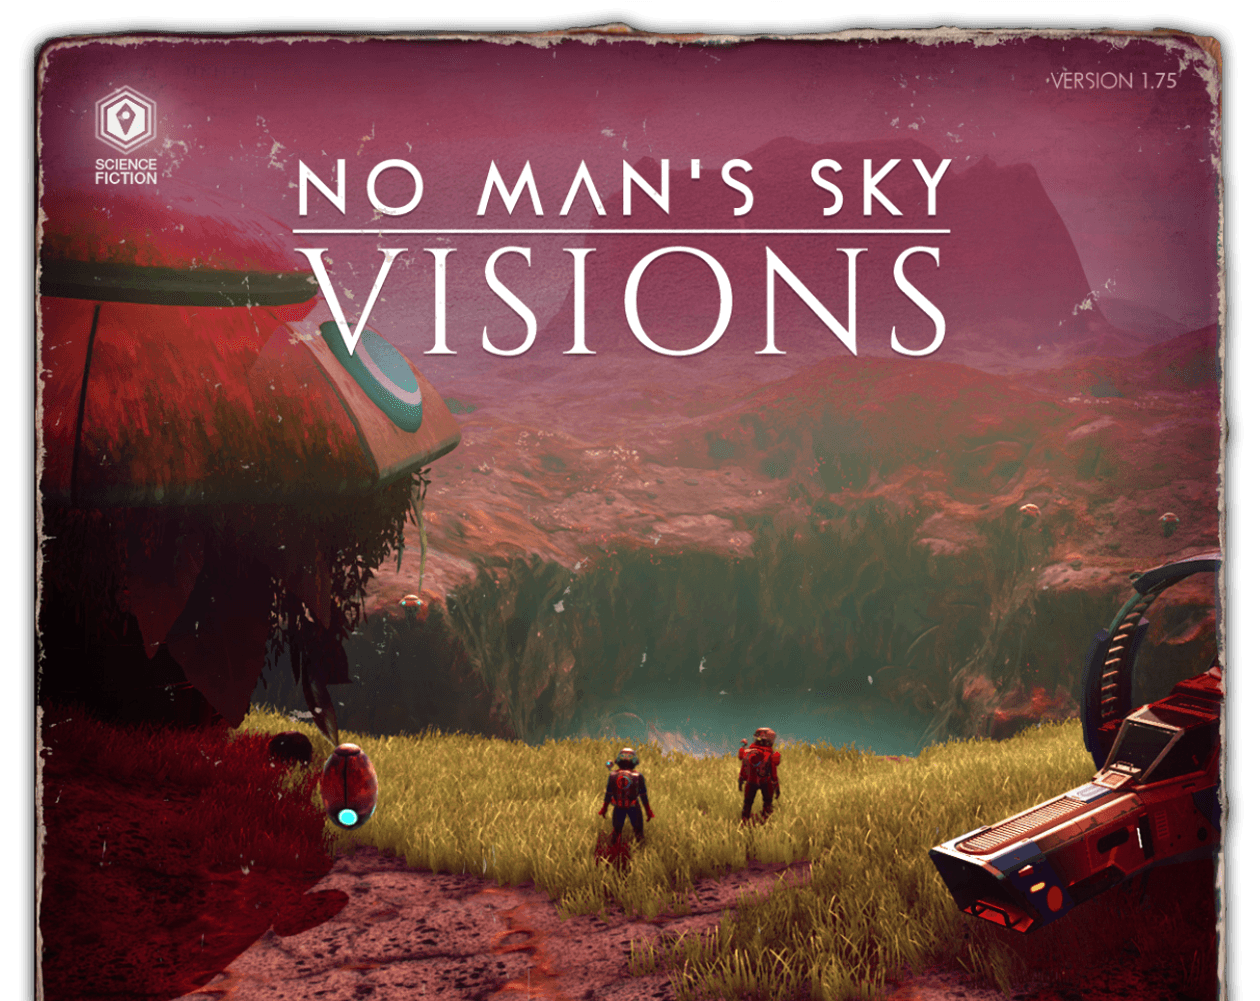 Book cover styled art showcasing No Man's Sky artwork